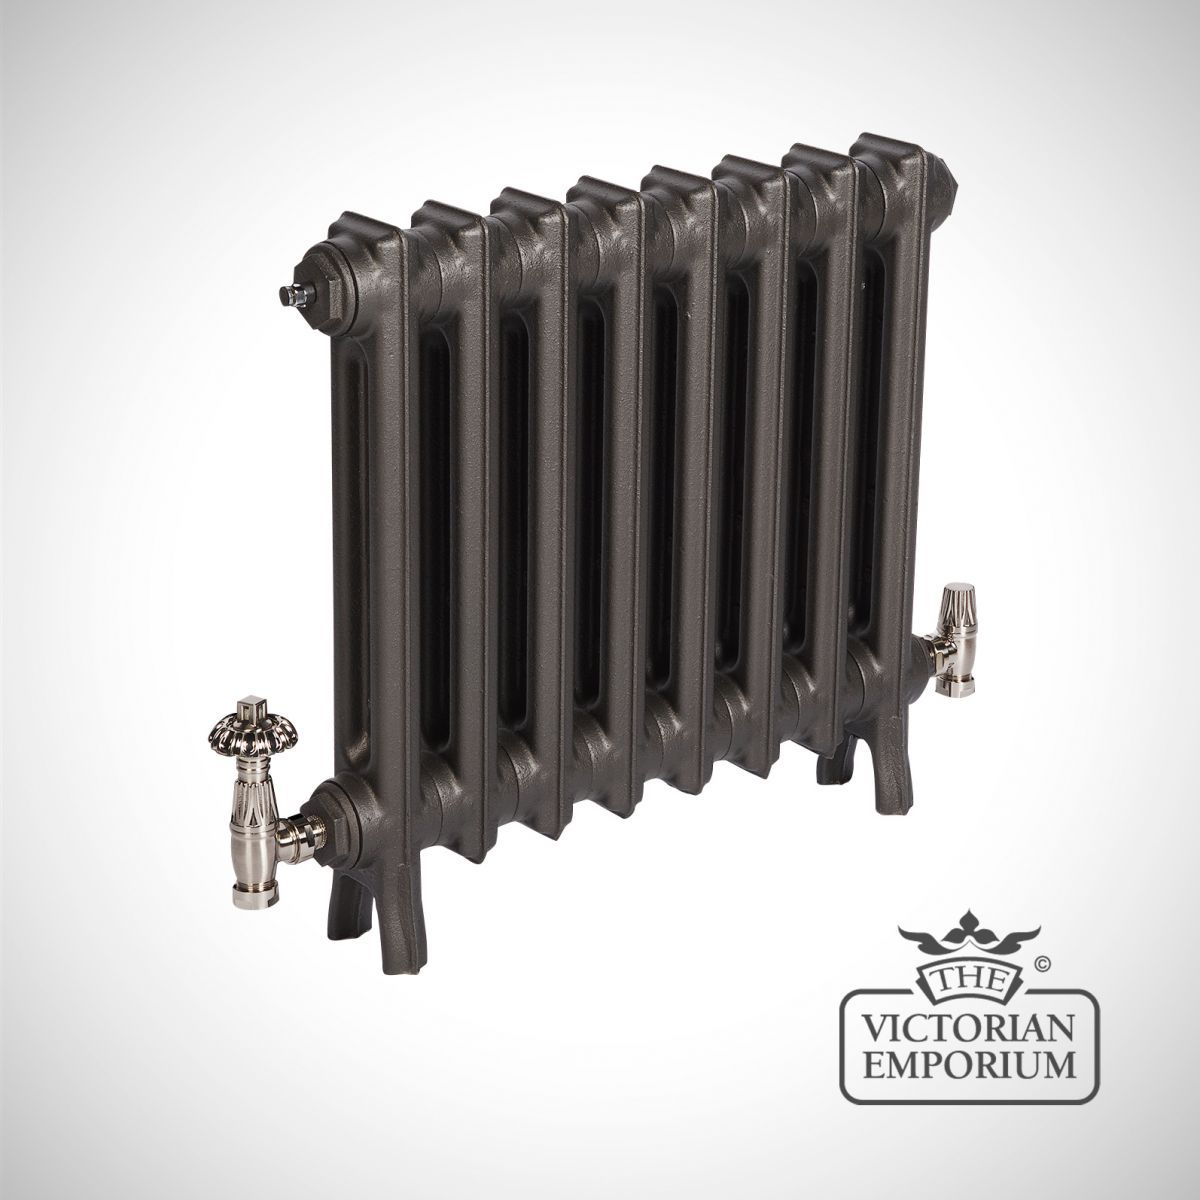 Buy Georgia radiator 2 column 490mm high, Victorian cast iron radiators - Our Georgia 2 column cast iron radiators are a slimline traditional Arts and Crafts design offering a great solution where...